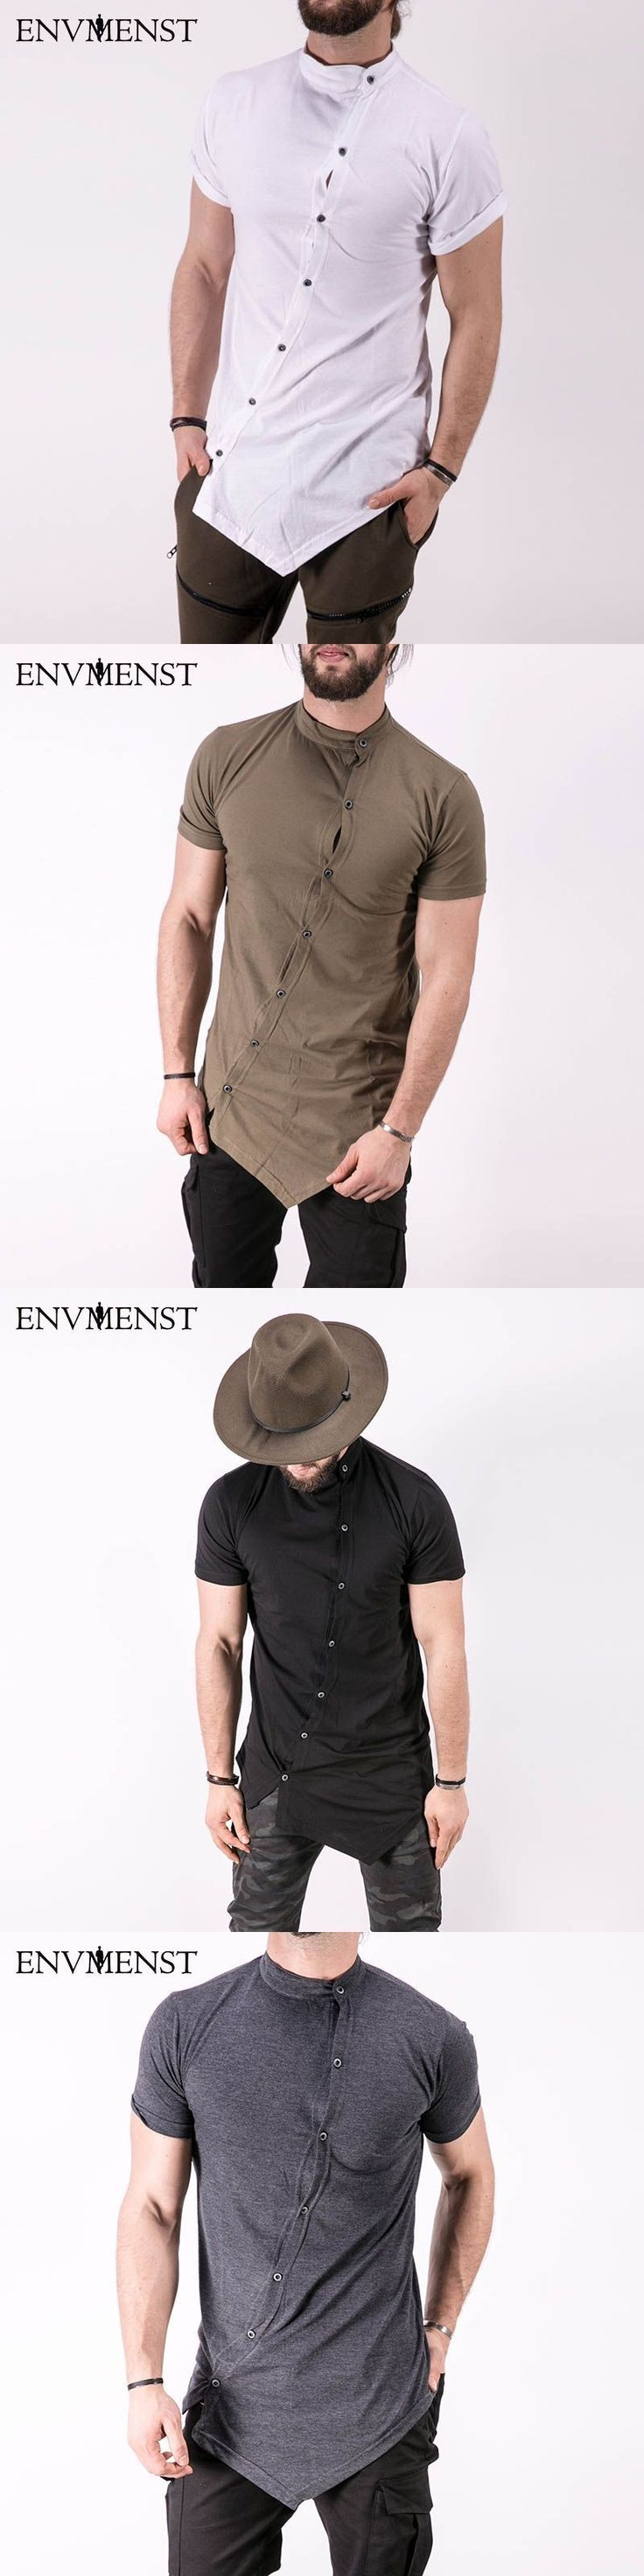 2017 Envmest Brand New Men's Assassin's Creed Street Stylish T-shirts For Men Oblique Button D Short Sleeve T-shirt Man Tee #menst-shirtsstreet #menshirts